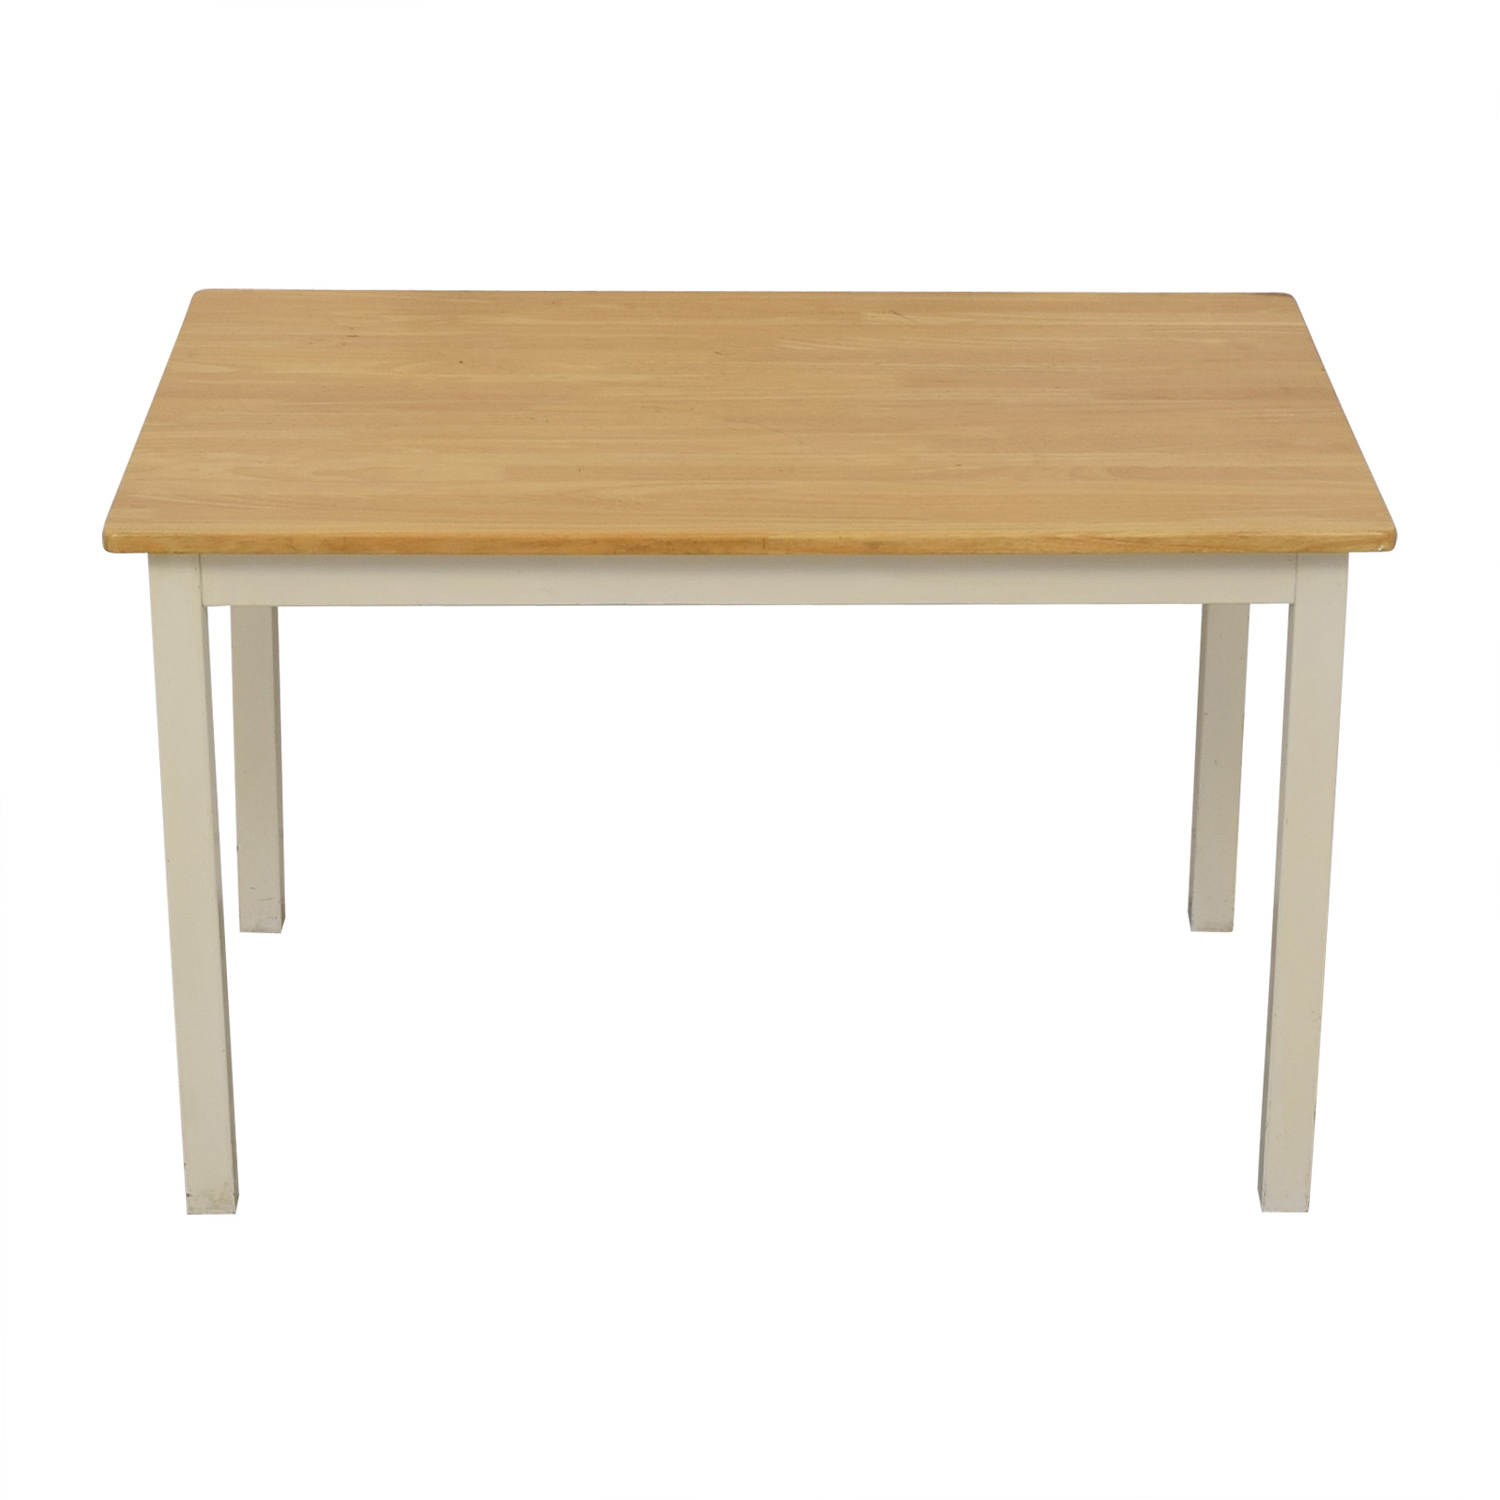 White and Wood Dining Table on sale